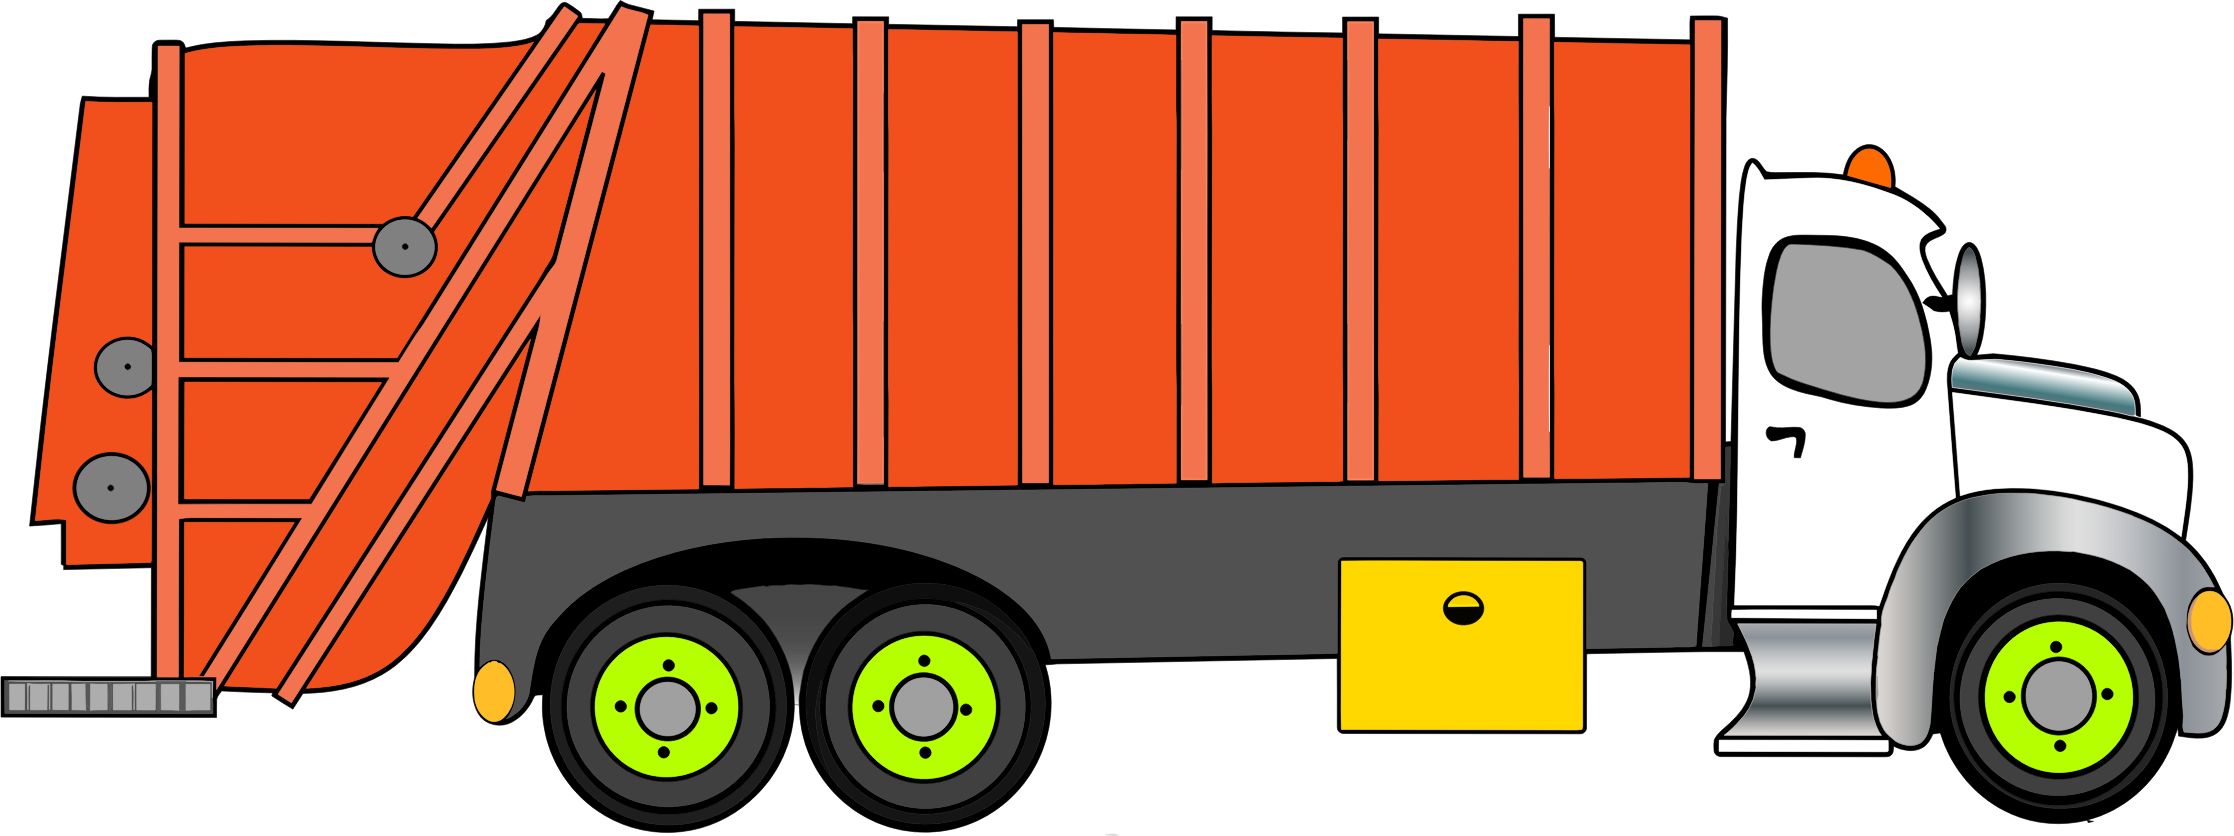 Free Trash Truck Cliparts, Download Free Clip Art, Free Clip Art on.